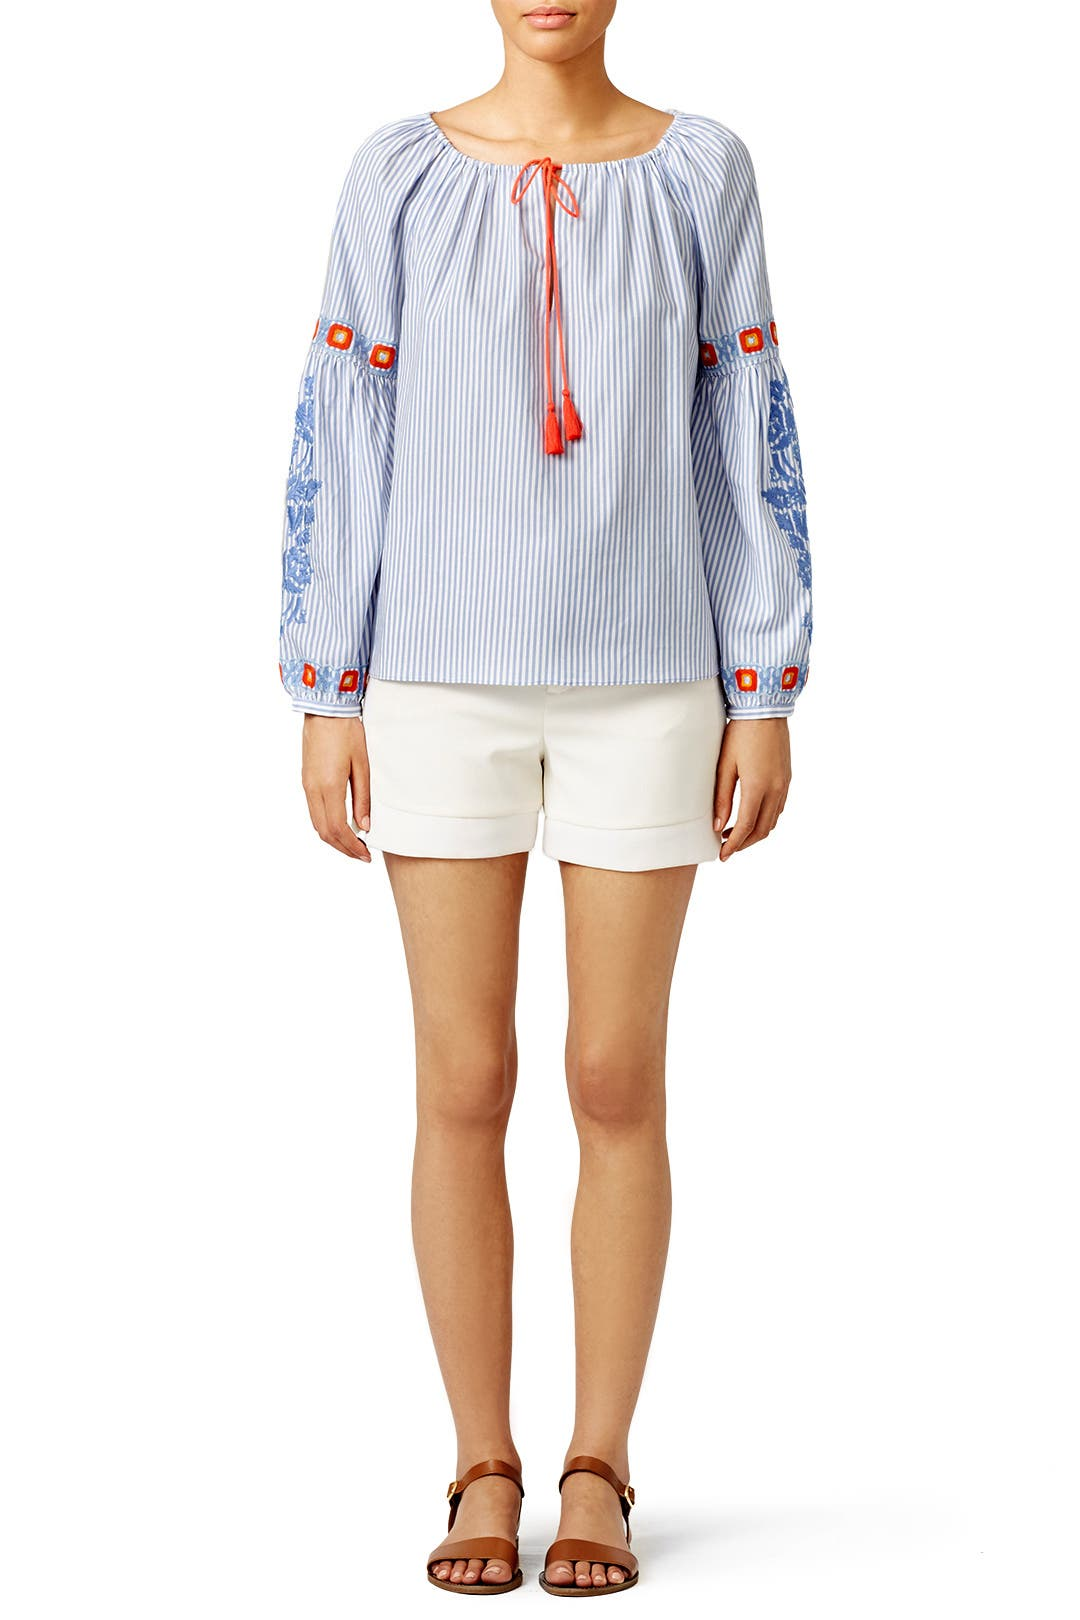 f88fb30b71 Madison Tunic by Tory Burch for  50